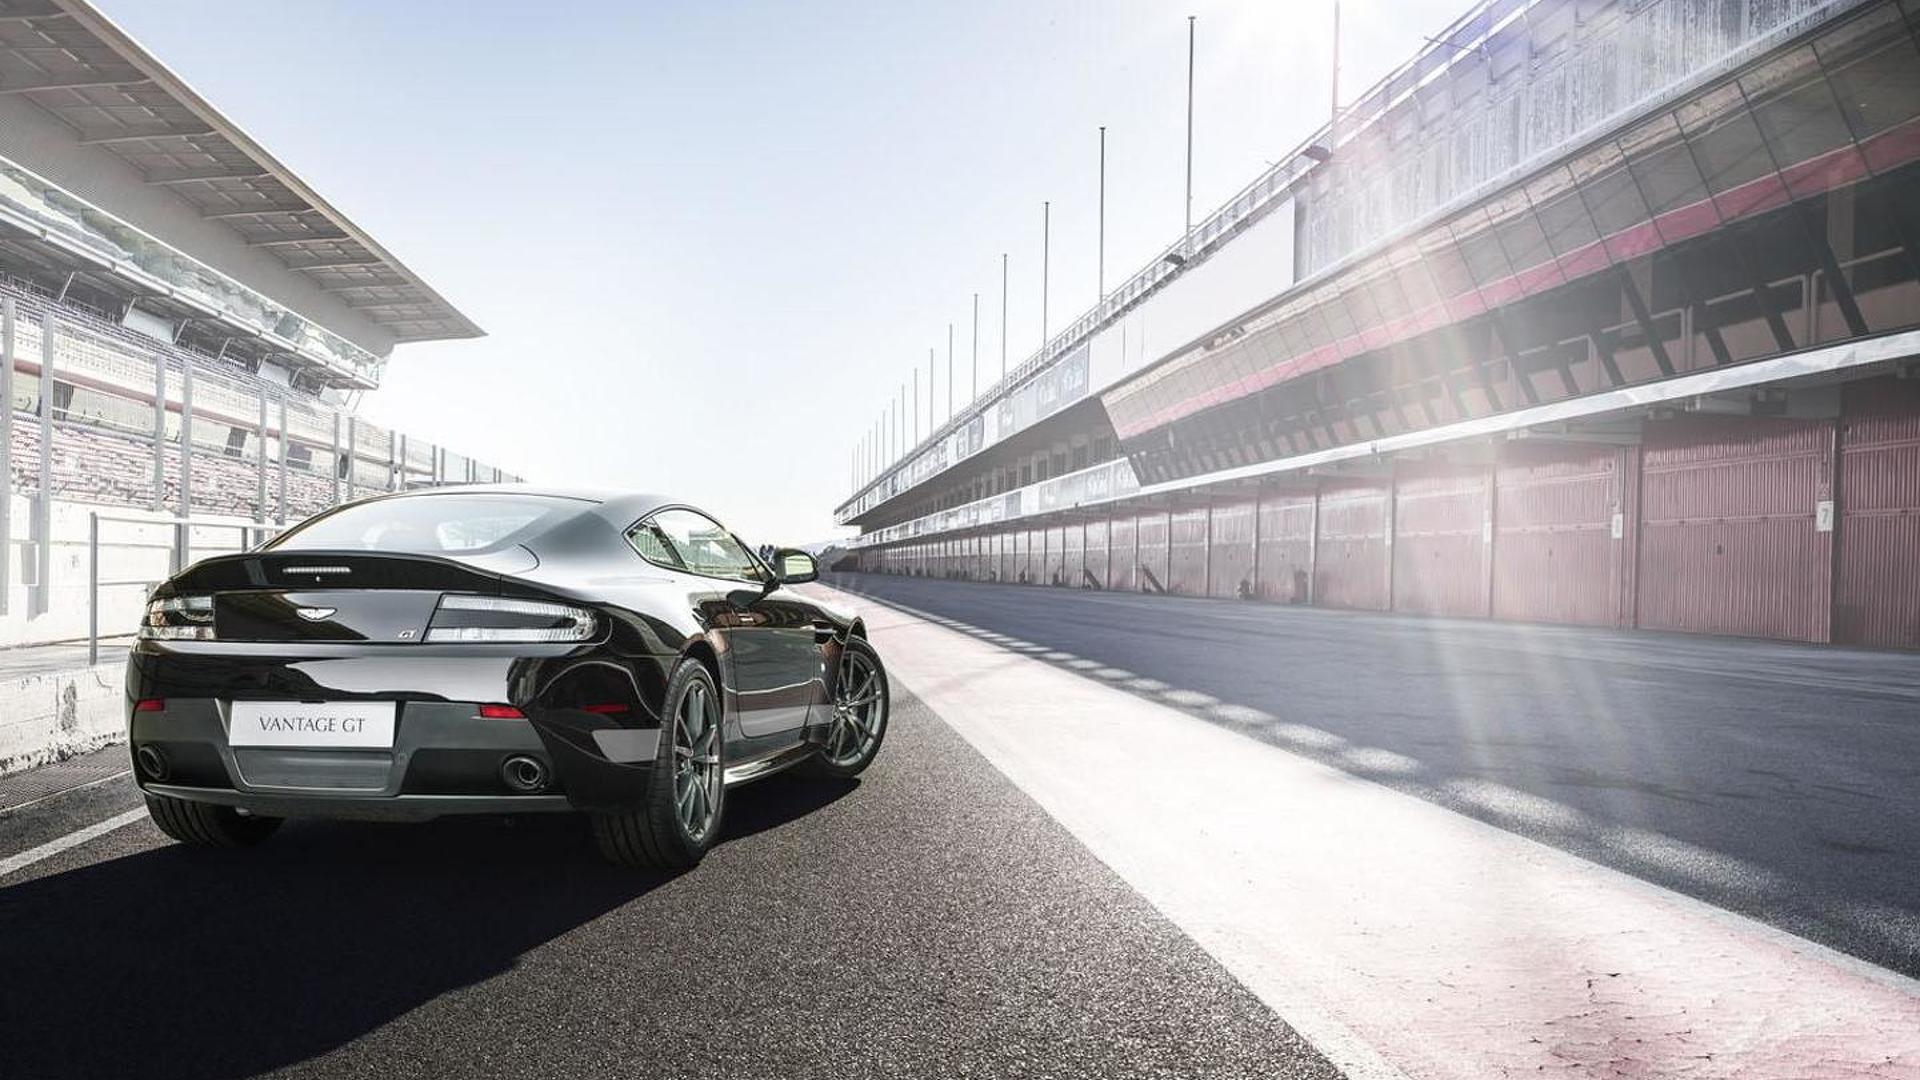 Aston Martin exec downplays entry-level model, says they are committed to sports cars